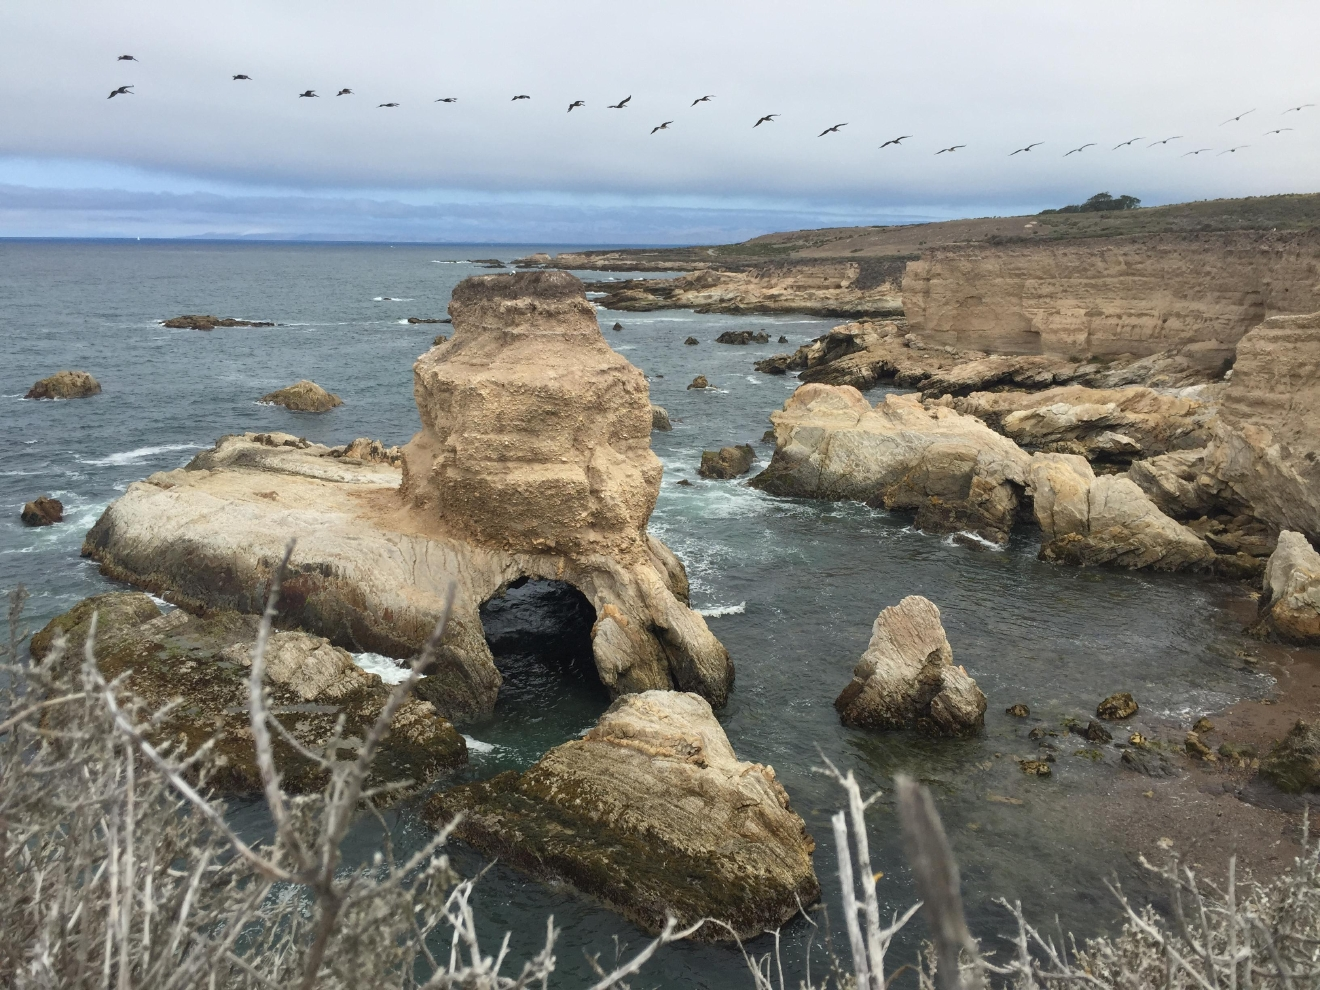 The bluff trail at Montaña de Oro State Park has tide pools and rock inlets at every turn.